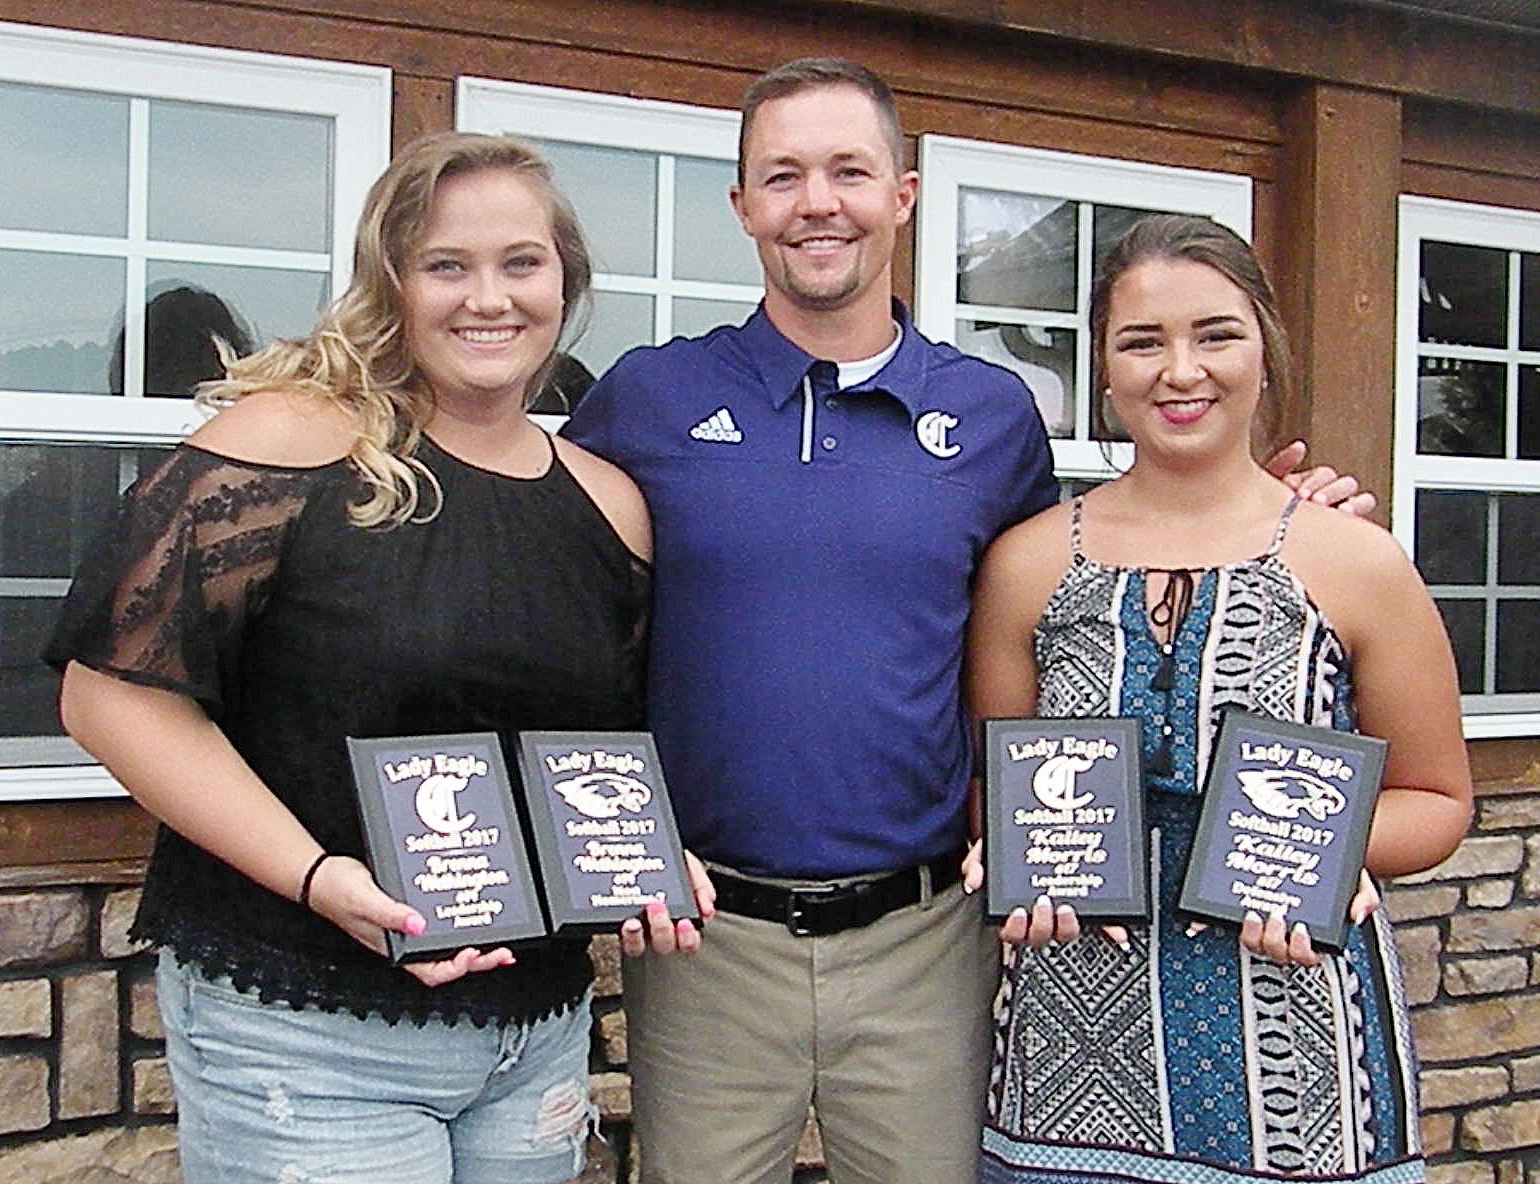 Brenna Wethington, at left, and Kailey Morris, who graduated from CHS in May, were honored for their dedication to their team. Wethington received the Most Home Runs Award and Morris received the Defense Award. The two, pictured with head coach Weston Jones, also each received the Leadership Award.